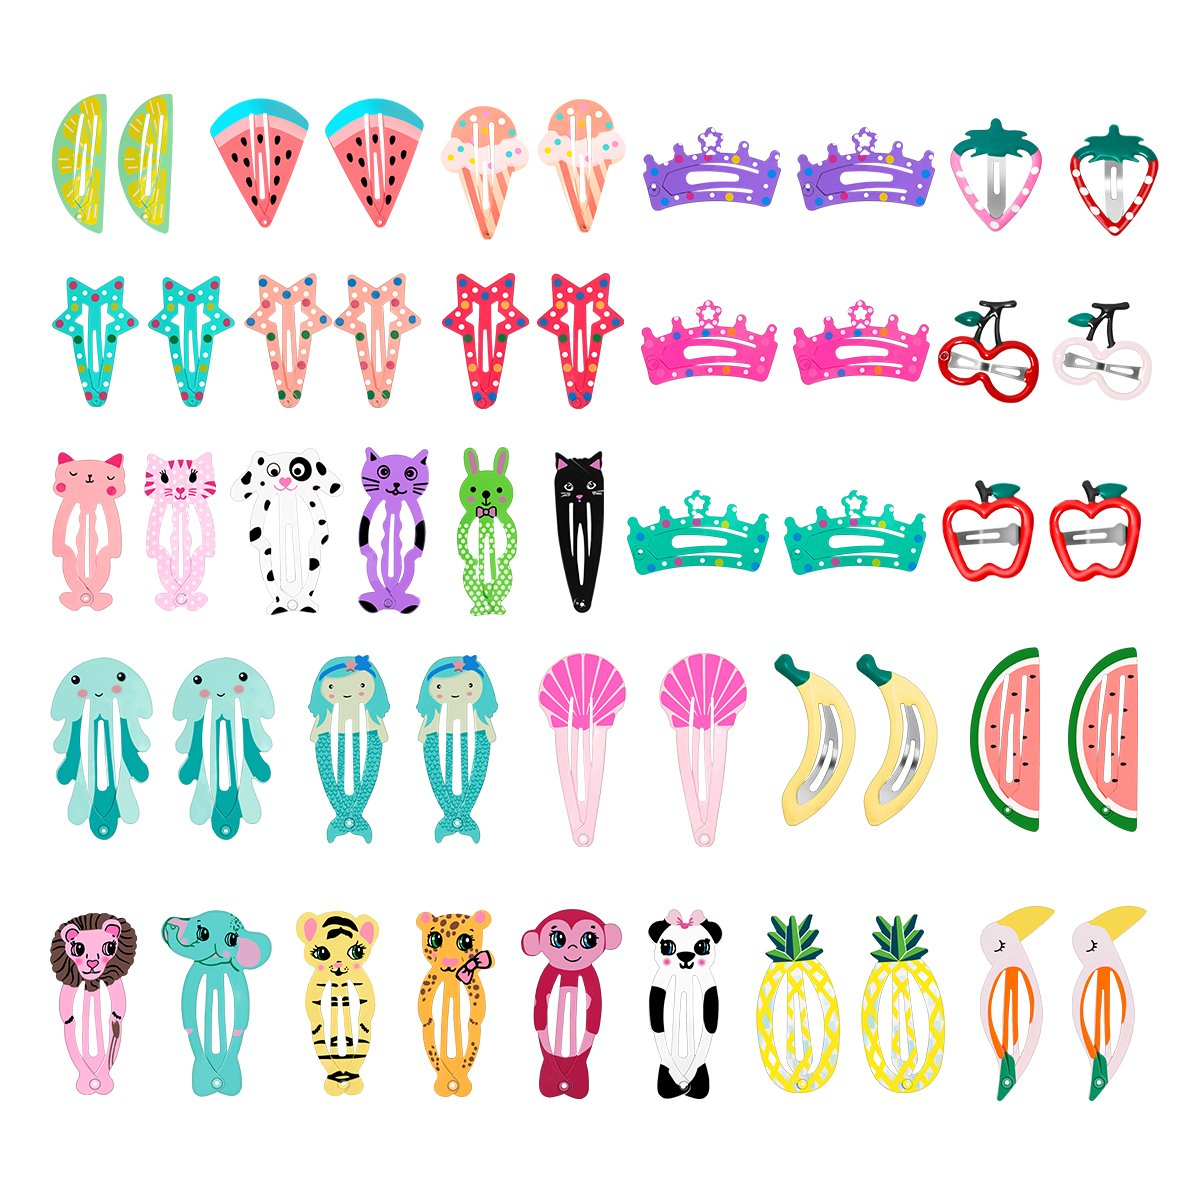 50 Pcs Baby Girls Hair Clips, Lovely Metal Snap Hair Pins for Kids Toddlers Girls Hair Accessories